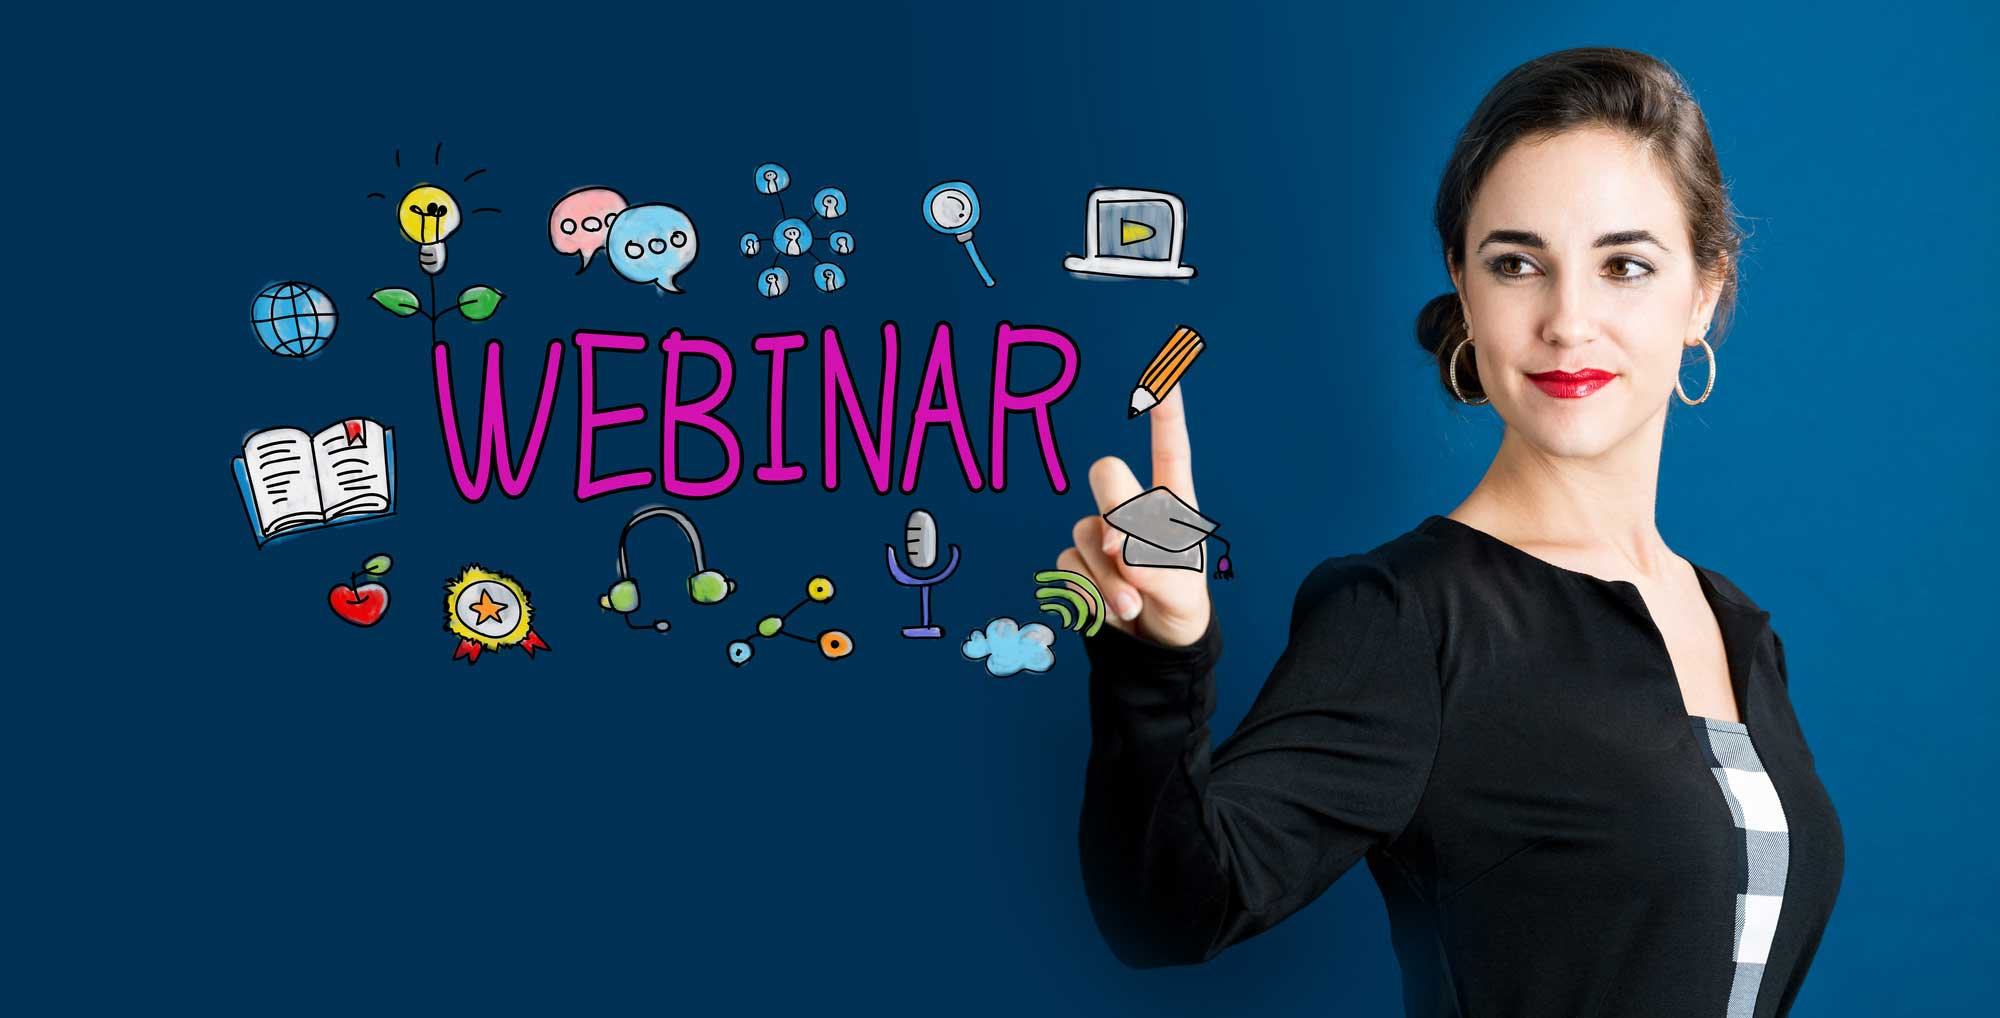 How To Promote Your Business With Webinars